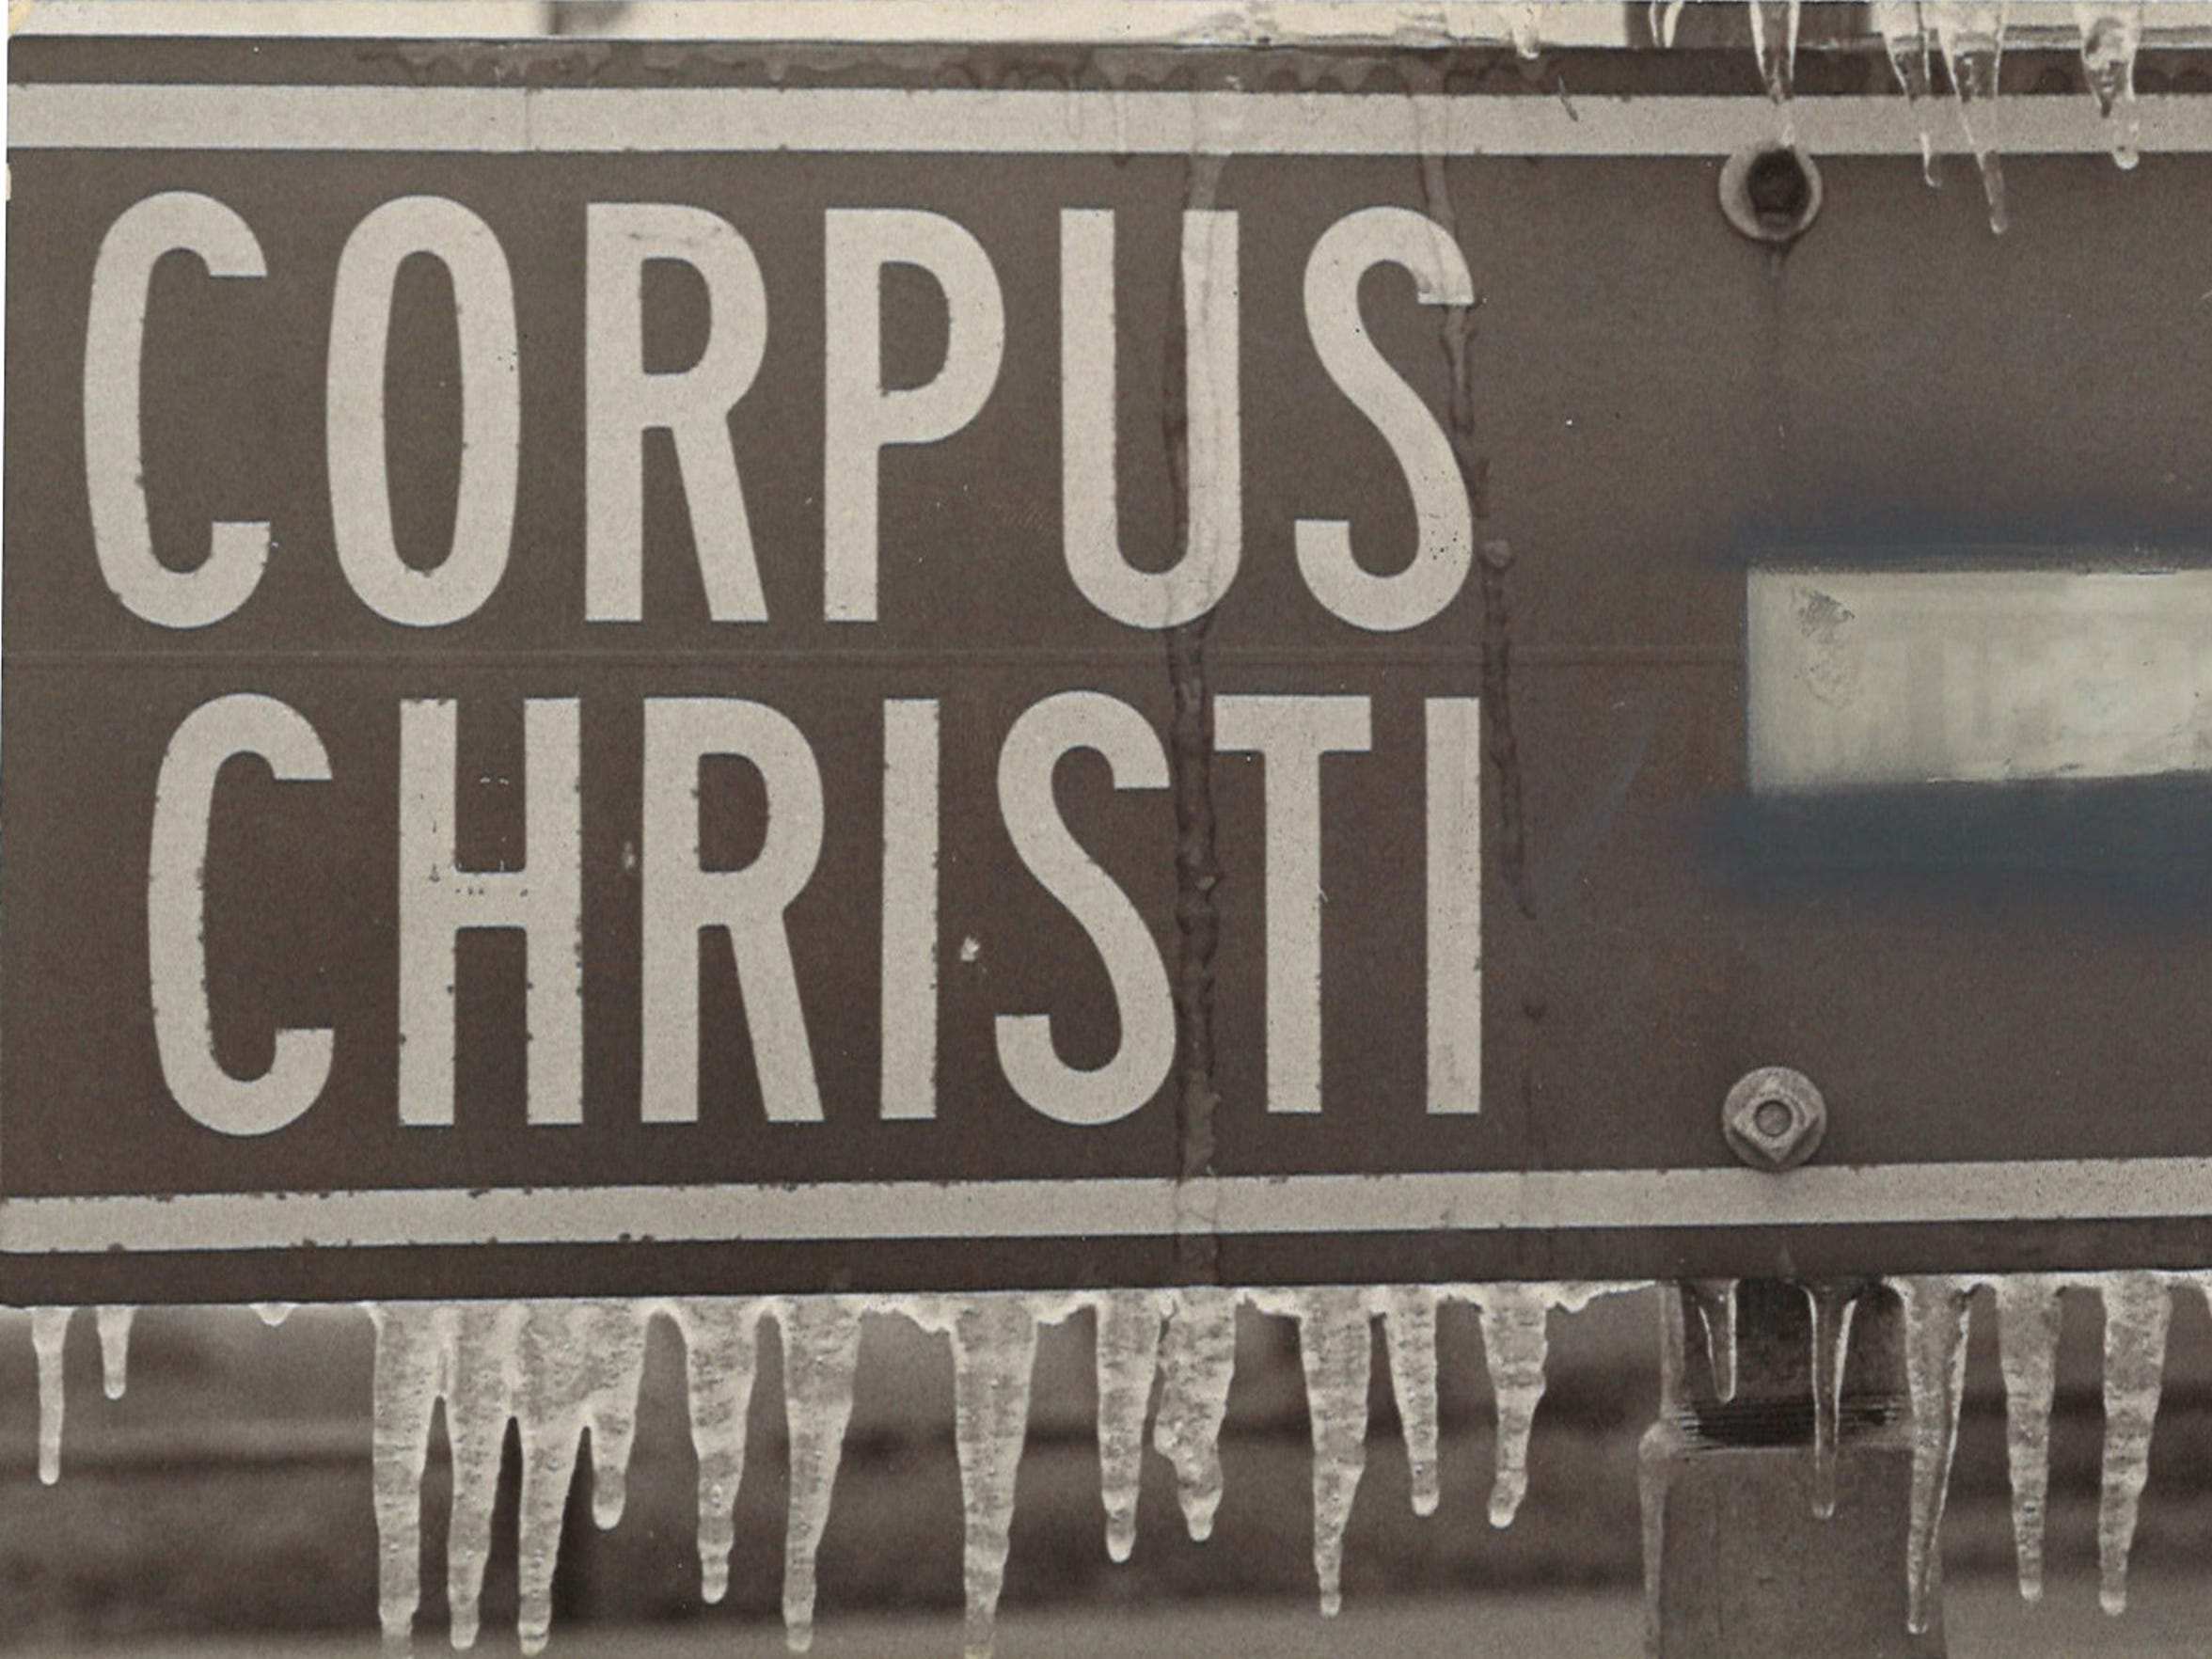 Even Corpus Christi can get freezing weather, as evidenced by this sign covered in ice on Jan. 11, 1973.